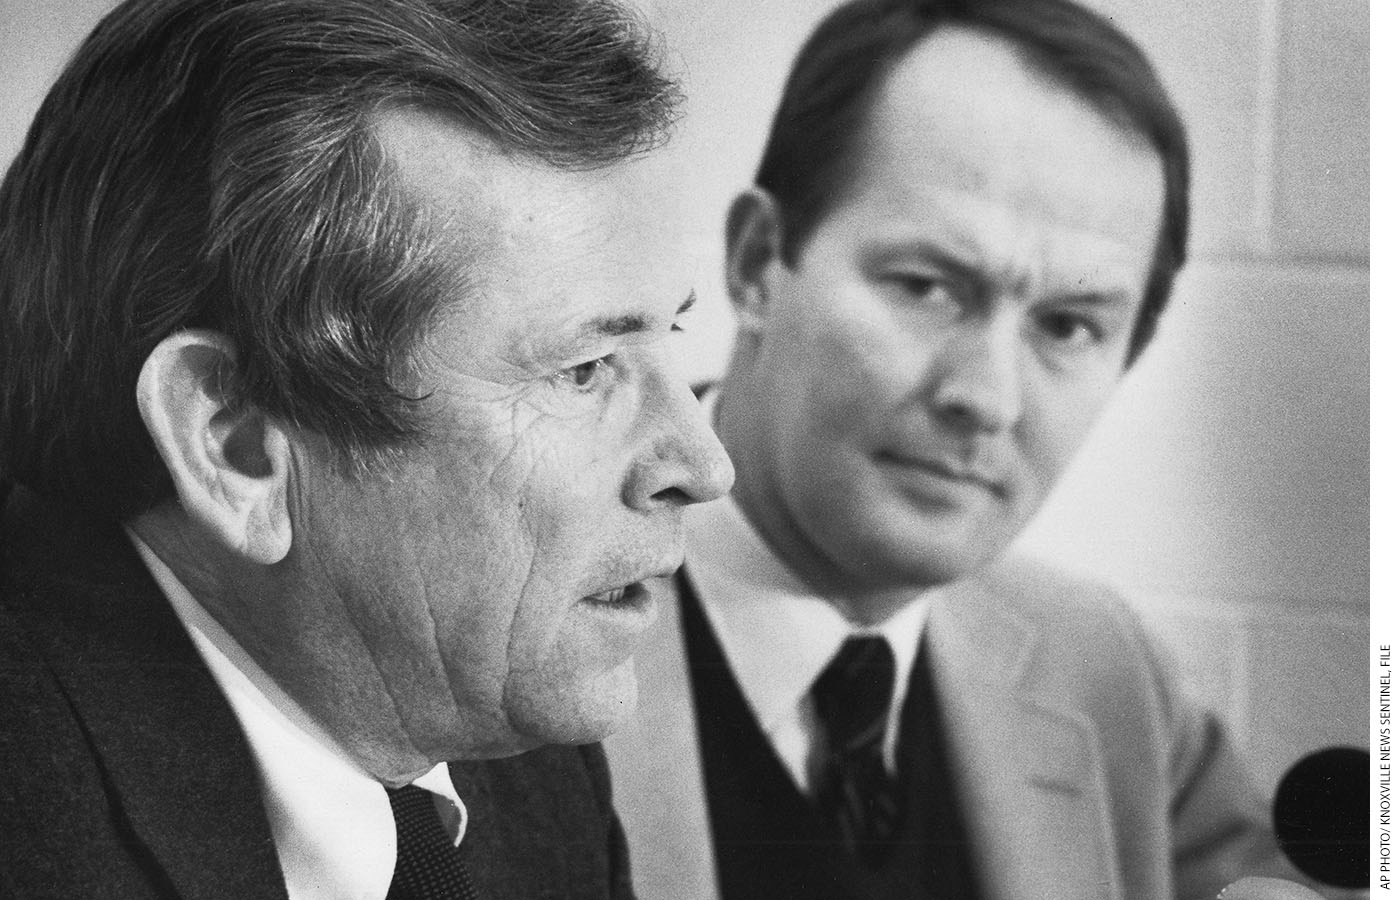 Senator Howard H. Baker, Jr., and then-governor Alexander meet the press at the annual Lincoln Day Dinner in Knoxville, Tennessee, February 11, 1982.